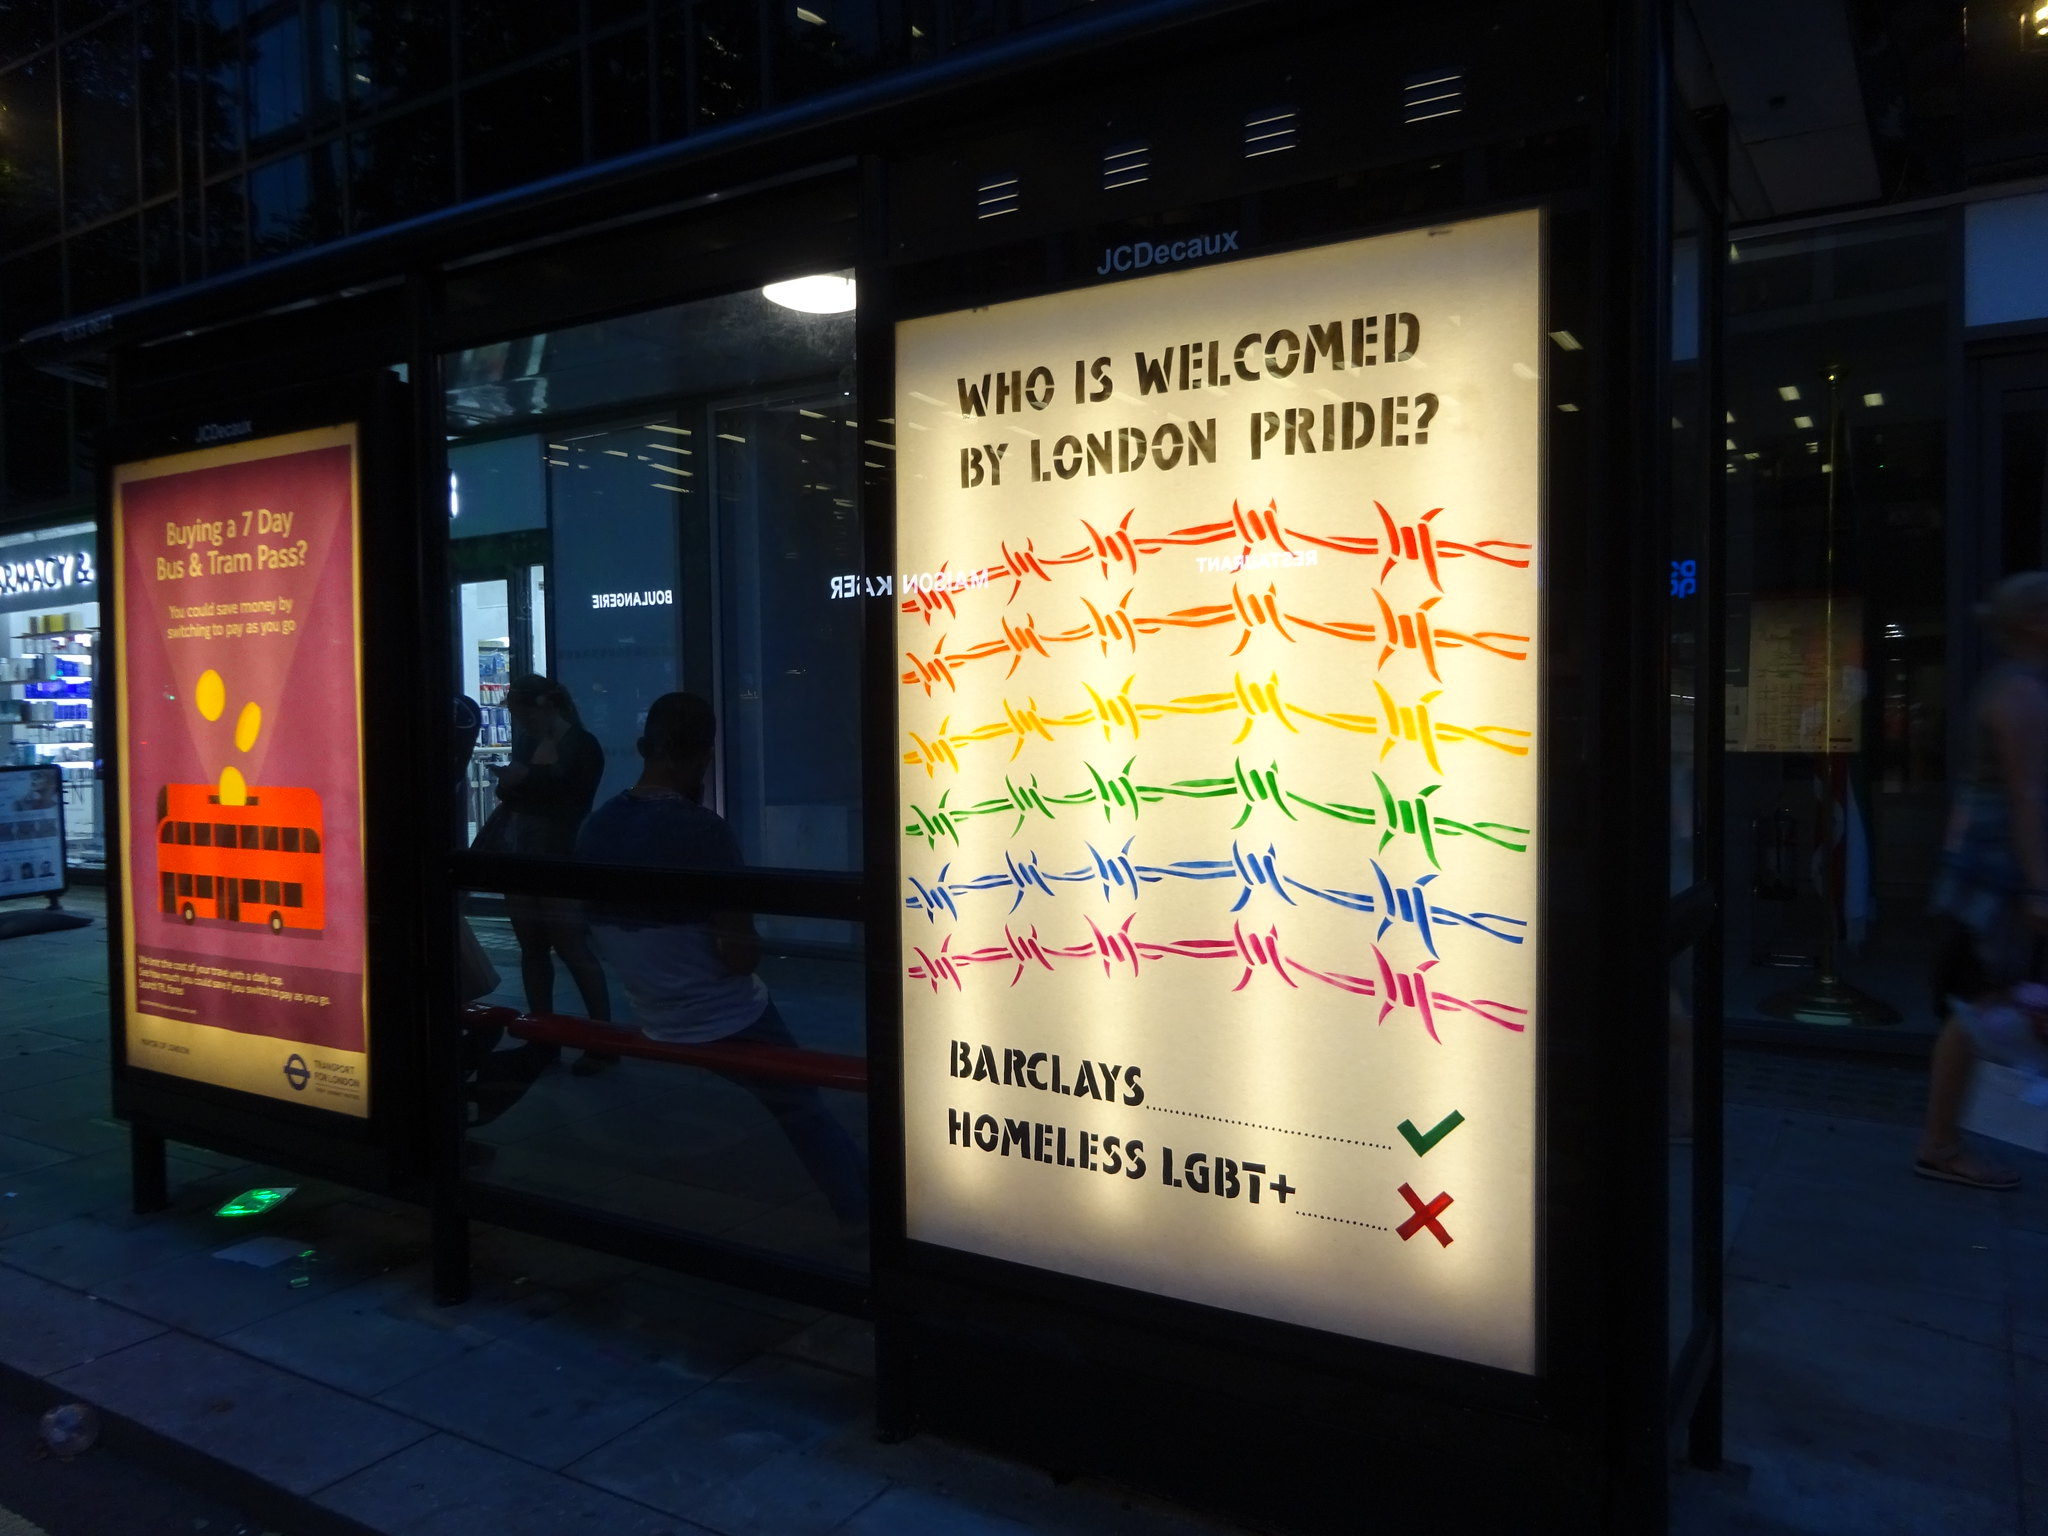 Bus stop adhack by Lesbians and Gays Support the Migrants and Protest Stencil protesting the exclusion of LGBT+ asylum seekers, homeless people and community groups from Pride in London